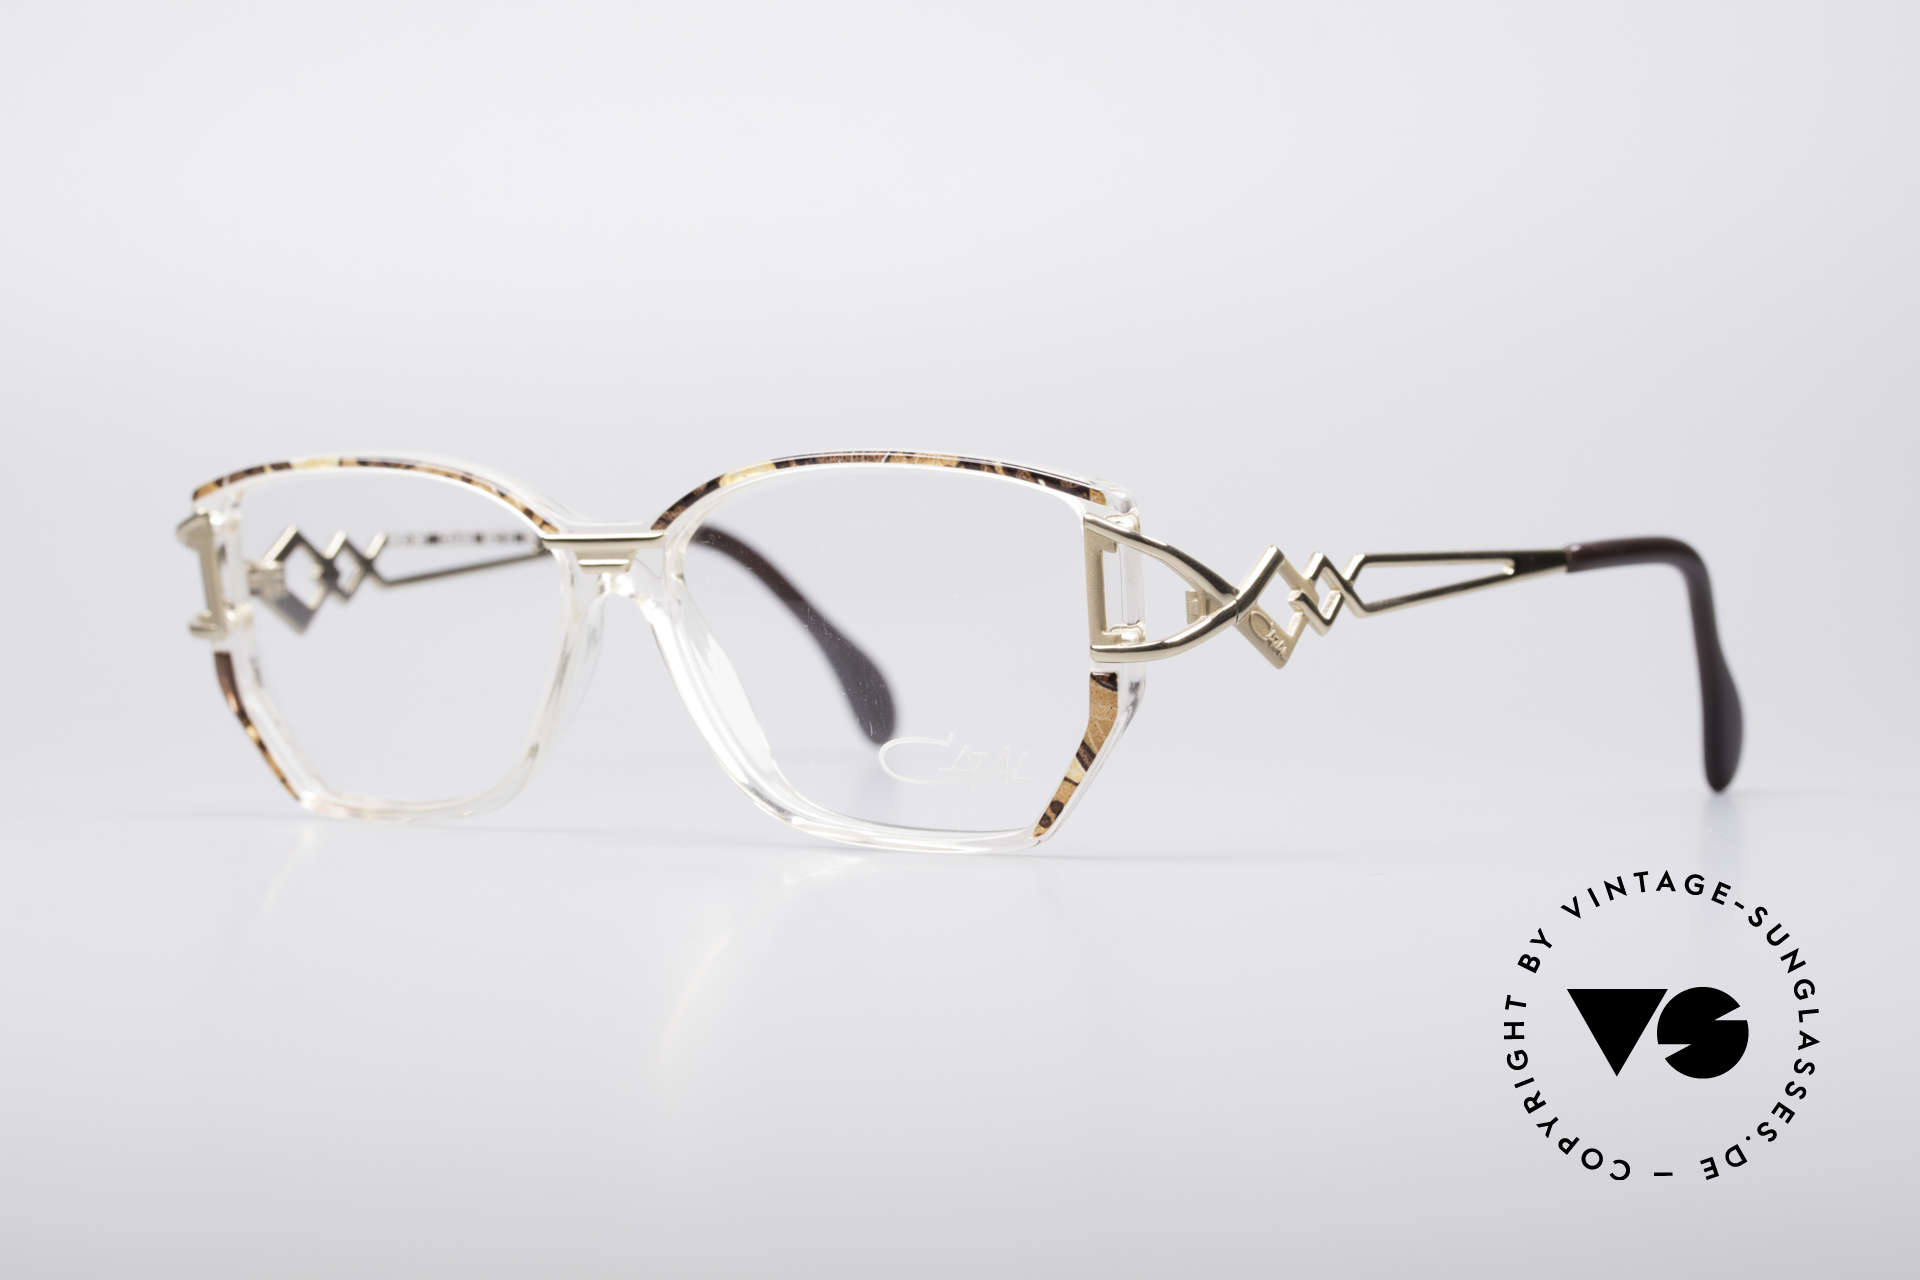 Cazal 367 90's Vintage Frame No Retro, crystal clear frame with a gold brownish pattern, Made for Women